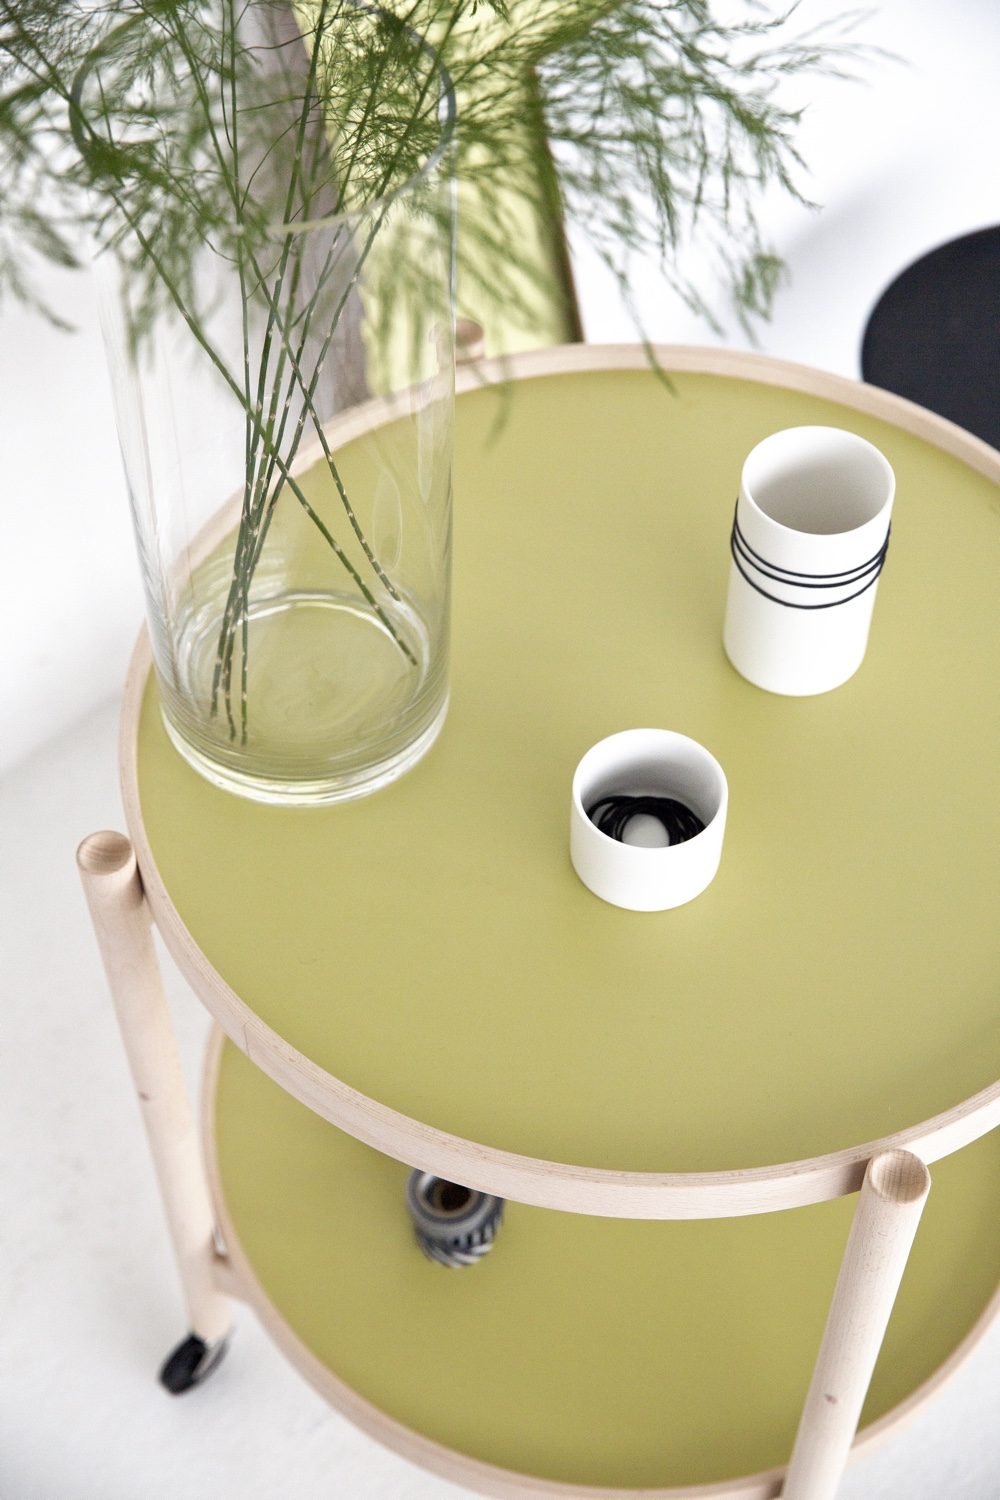 Bølling Tray Table with pear green trays. Image courtesy of Brdr. Krüger.